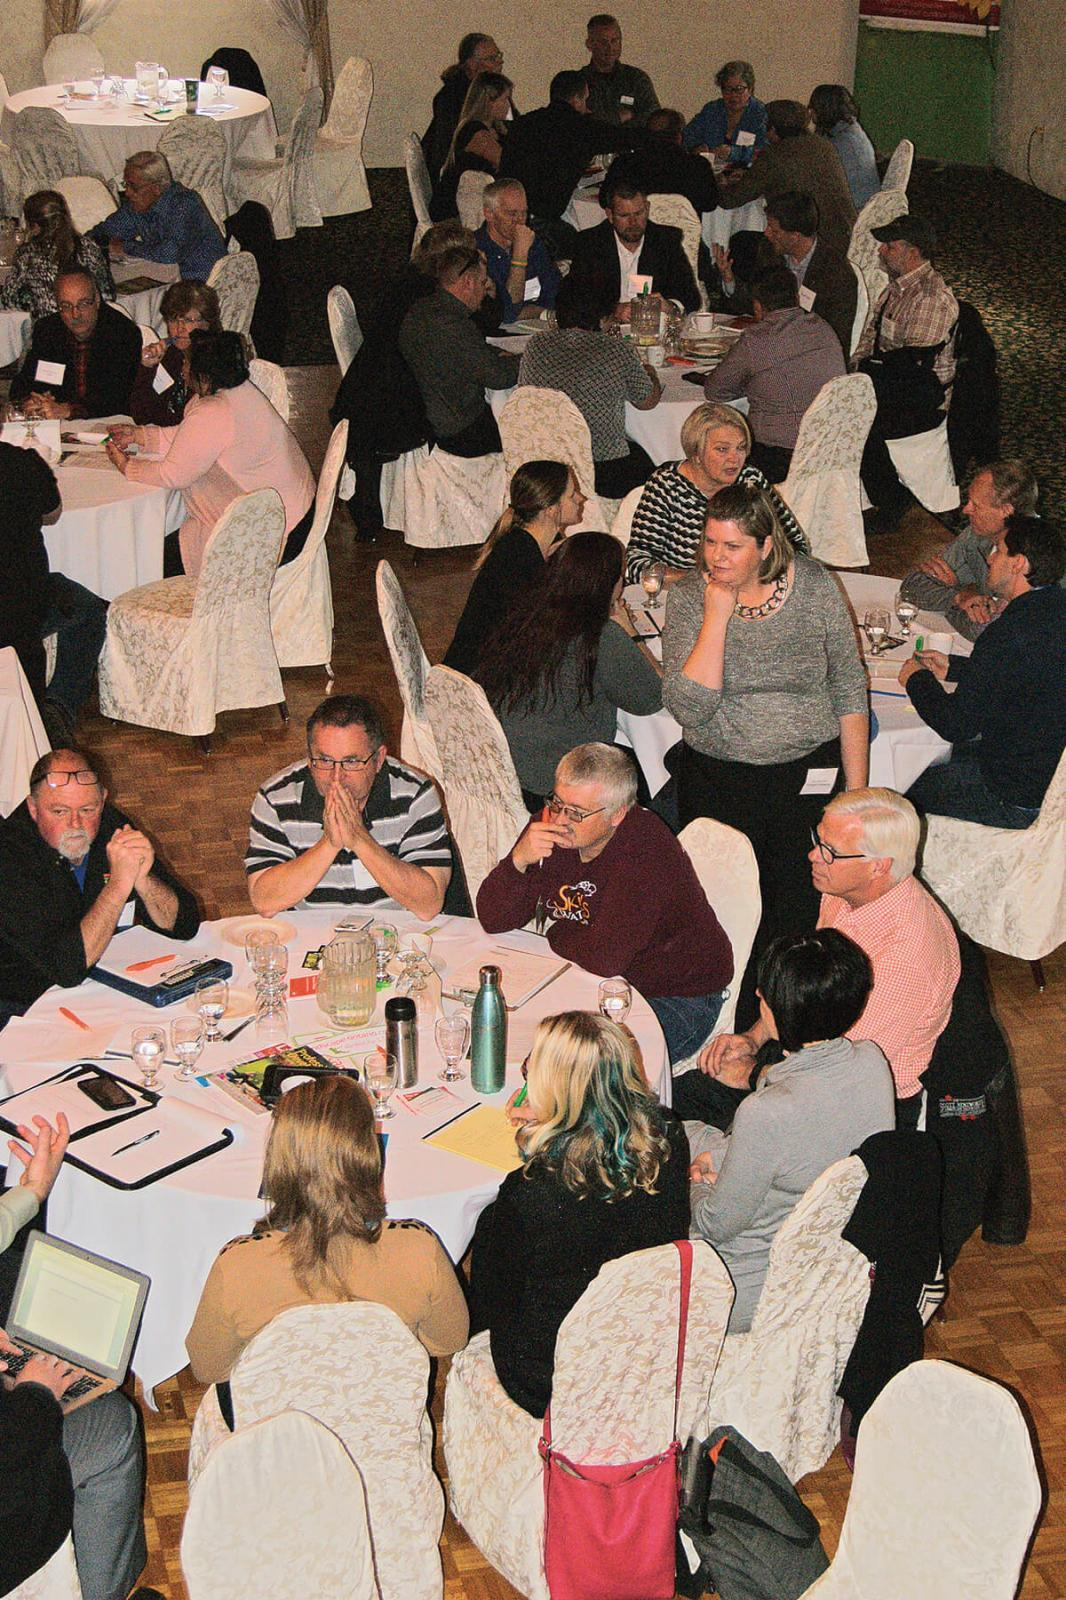 The roundtable discussions at this year's Governance meeting resulted in personal growth for many in attendance.